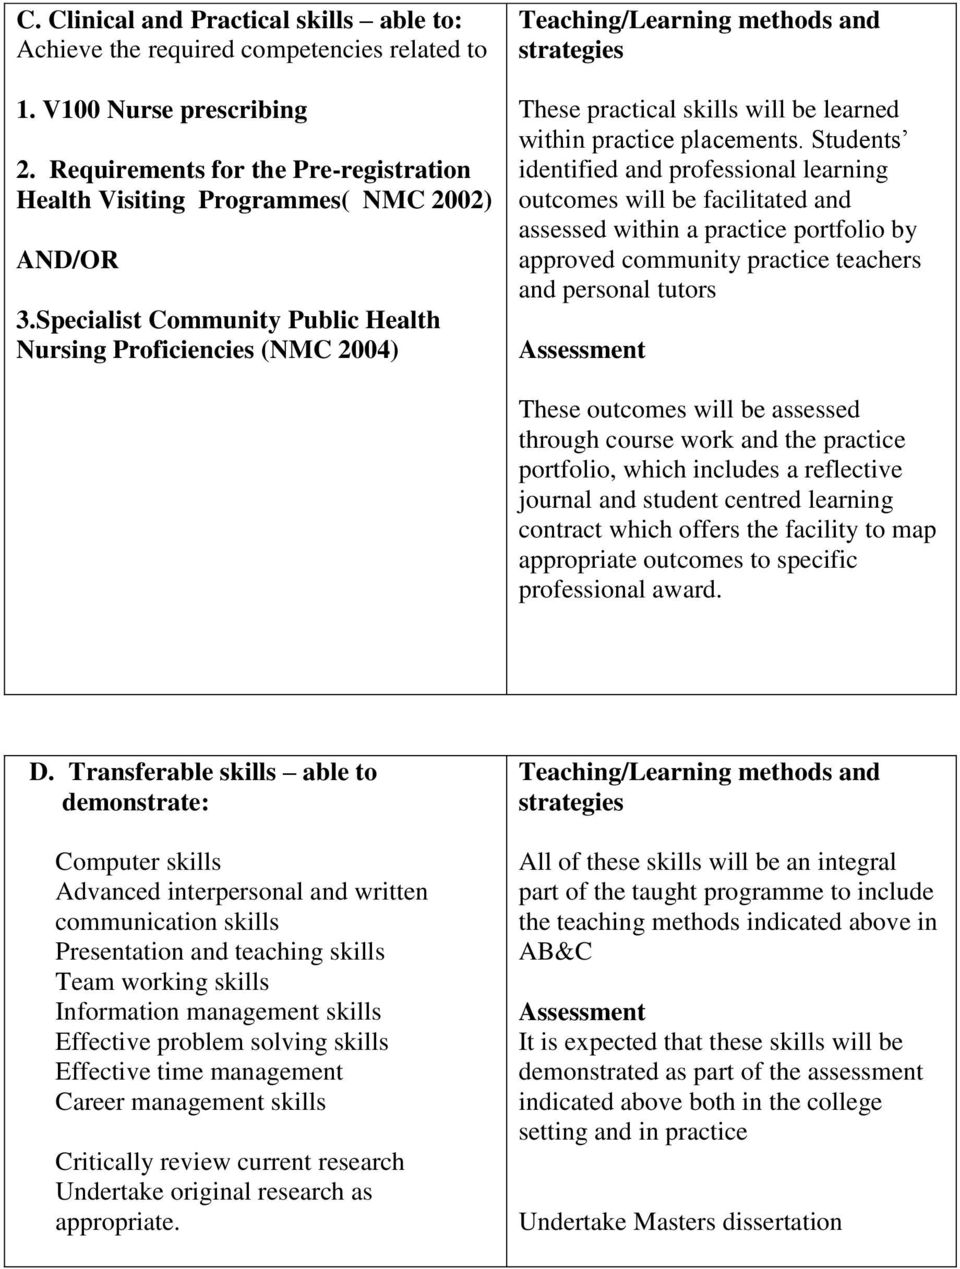 Specialist Community Public Health Nursing Proficiencies (NMC 2004) Teaching/Learning methods and strategies These practical skills will be learned within practice placements.